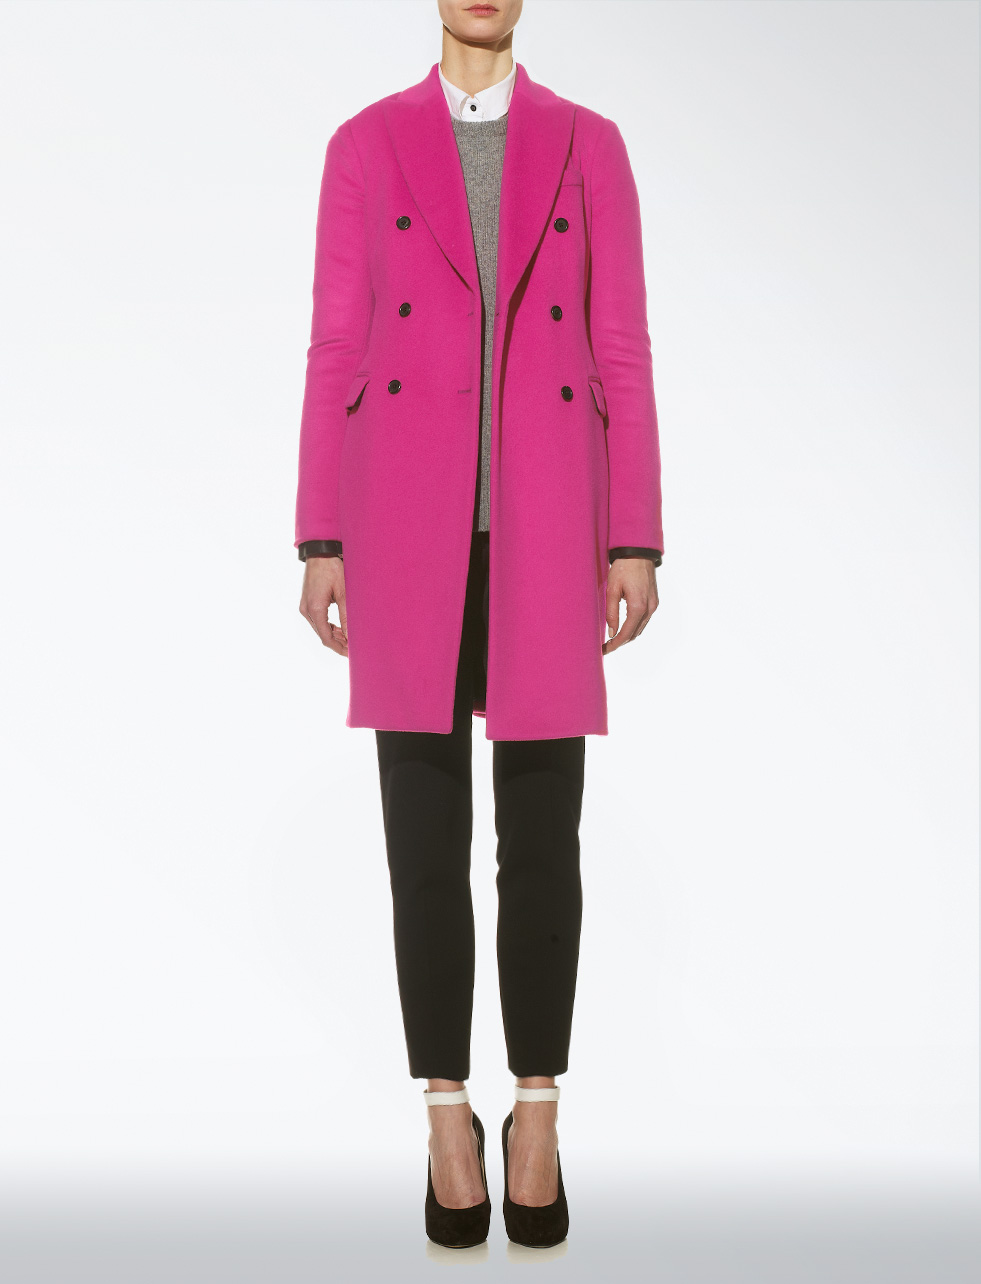 Fuschia Pink Coat Coat Nj